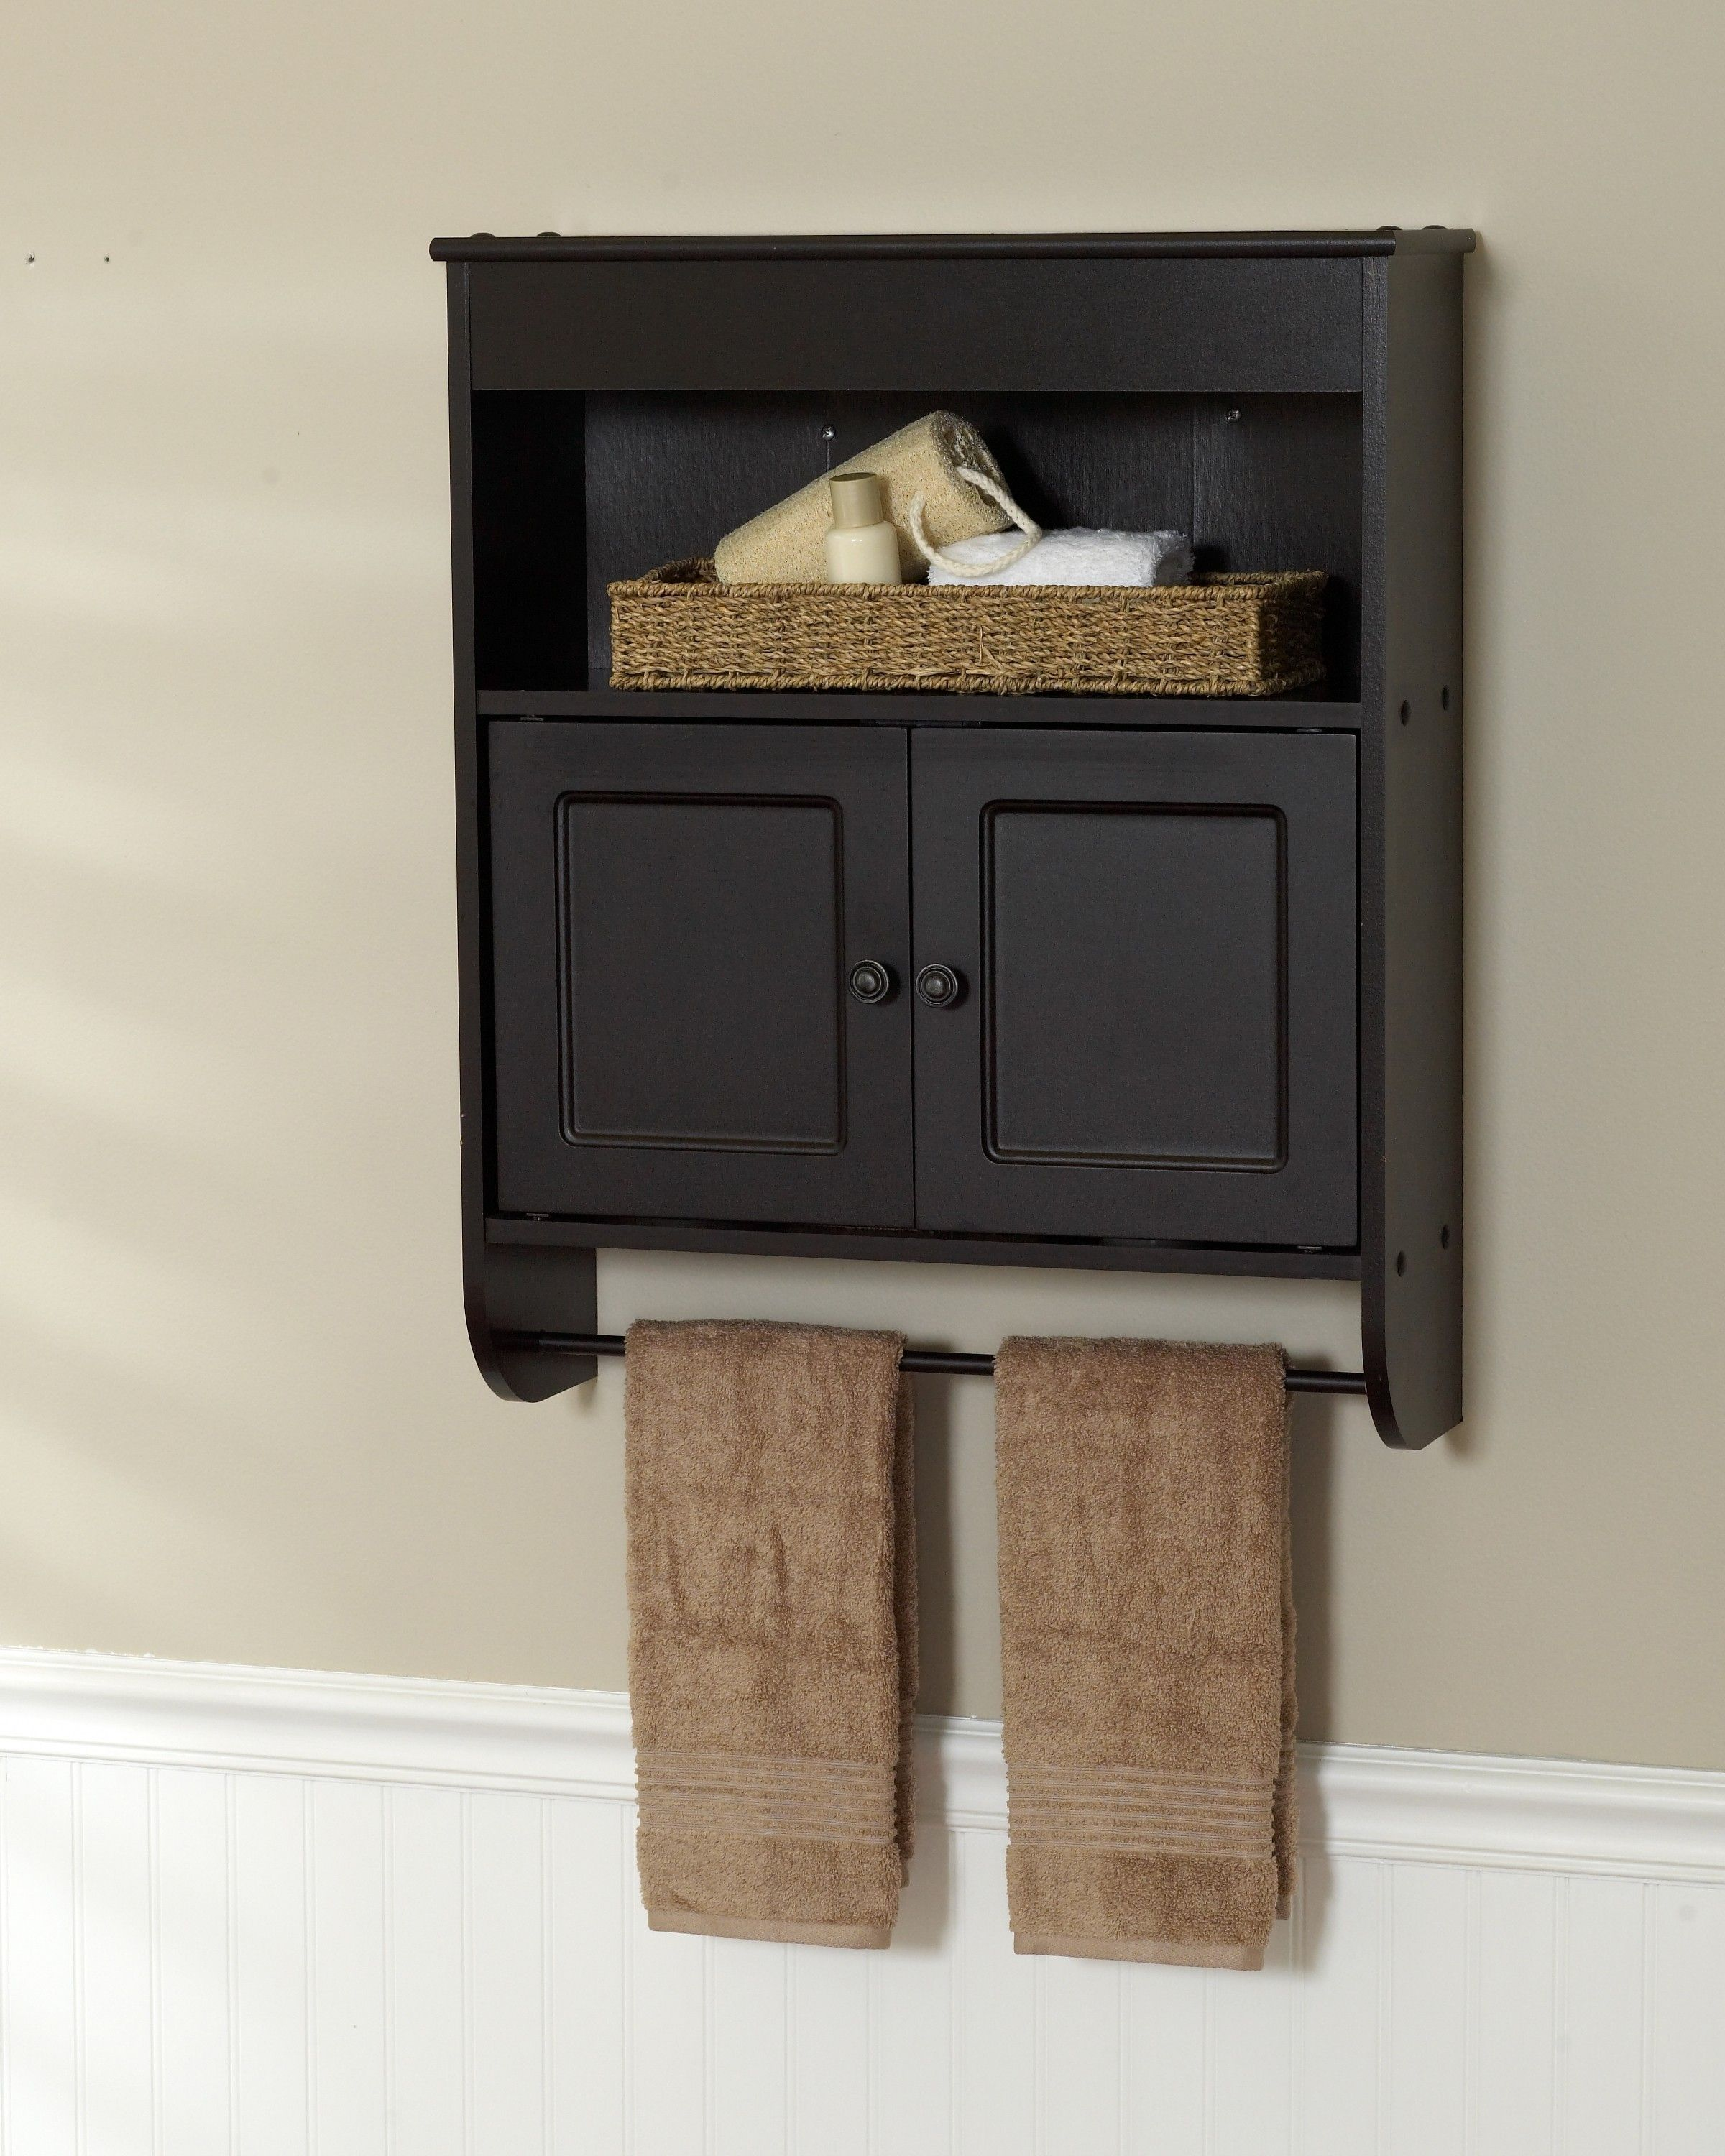 cabinet talentneeds bathroom storage small oak b mounting com wall brown mount single varnished as cabinets mounted shelf furniture double towel door generously